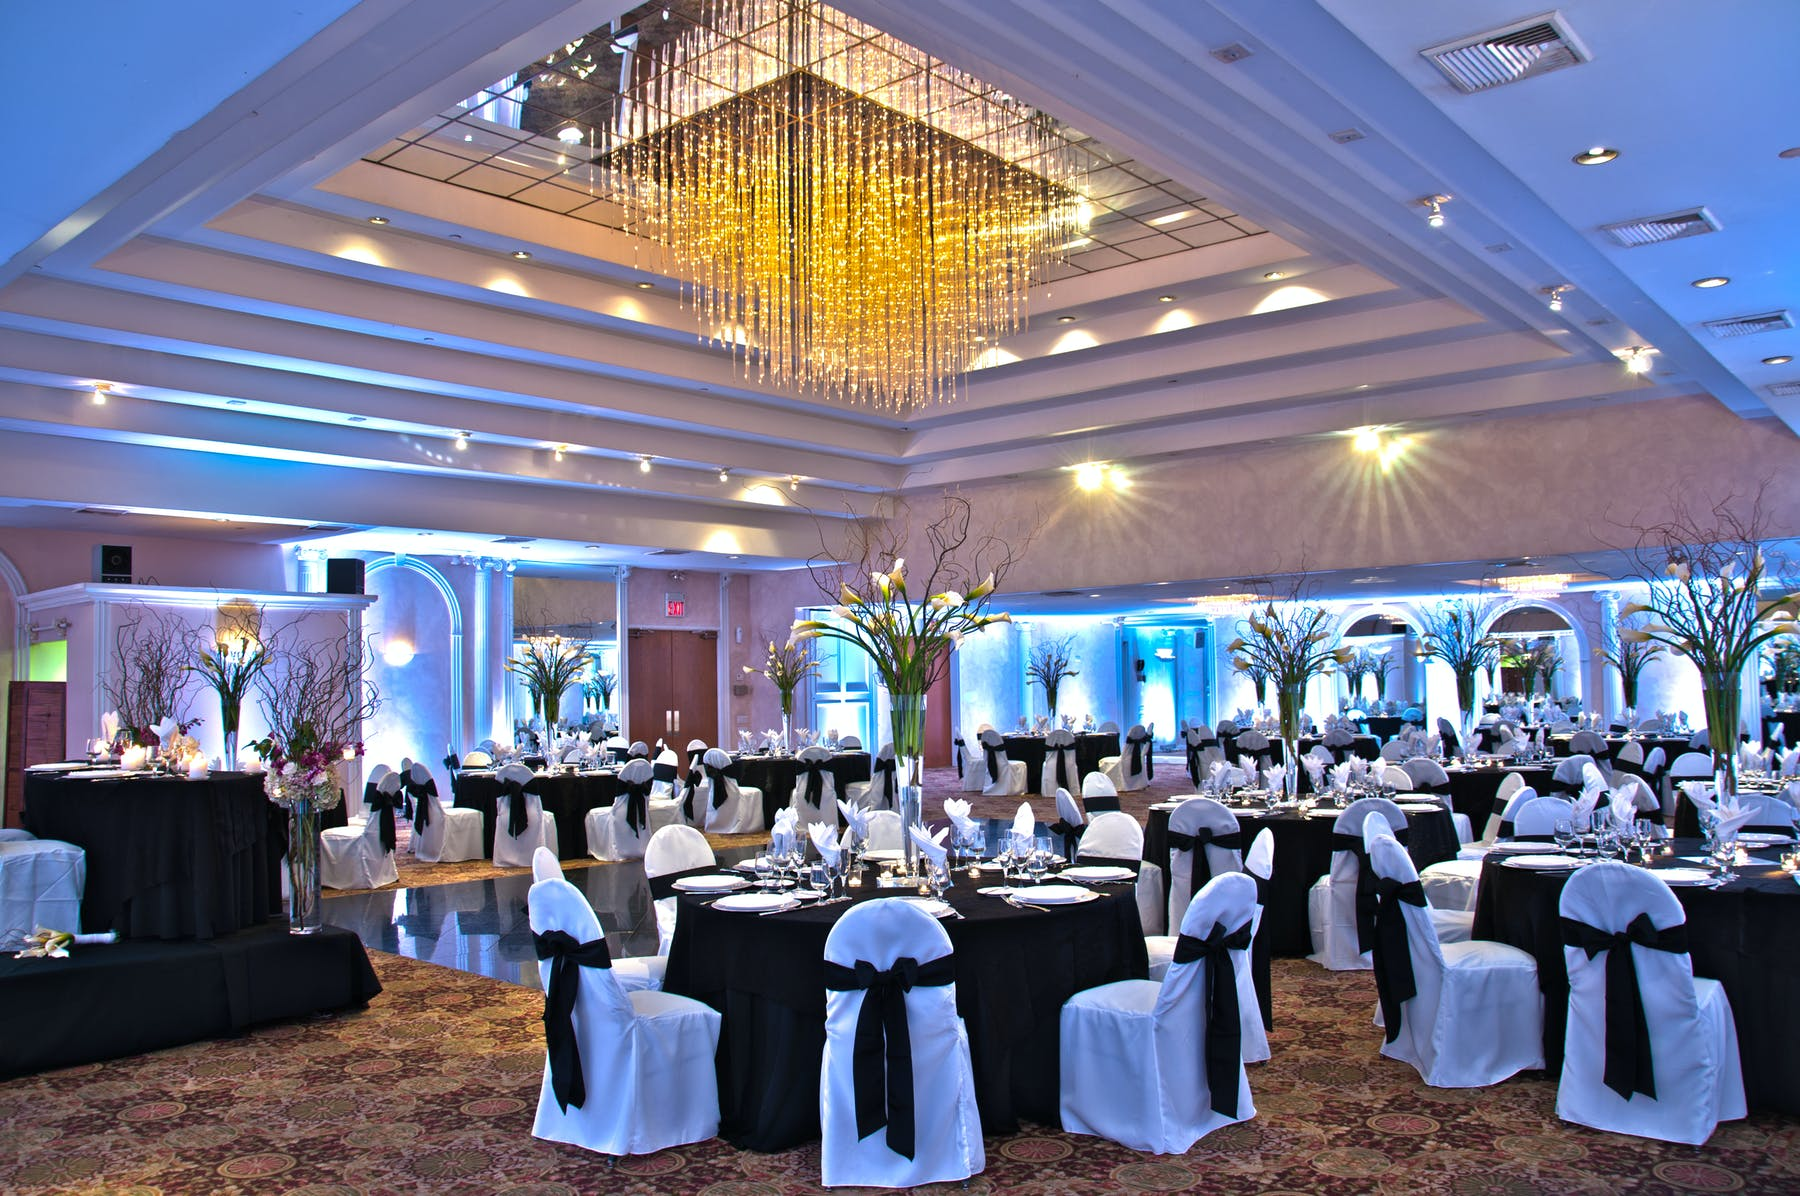 a room filled with decorated tables and chairs